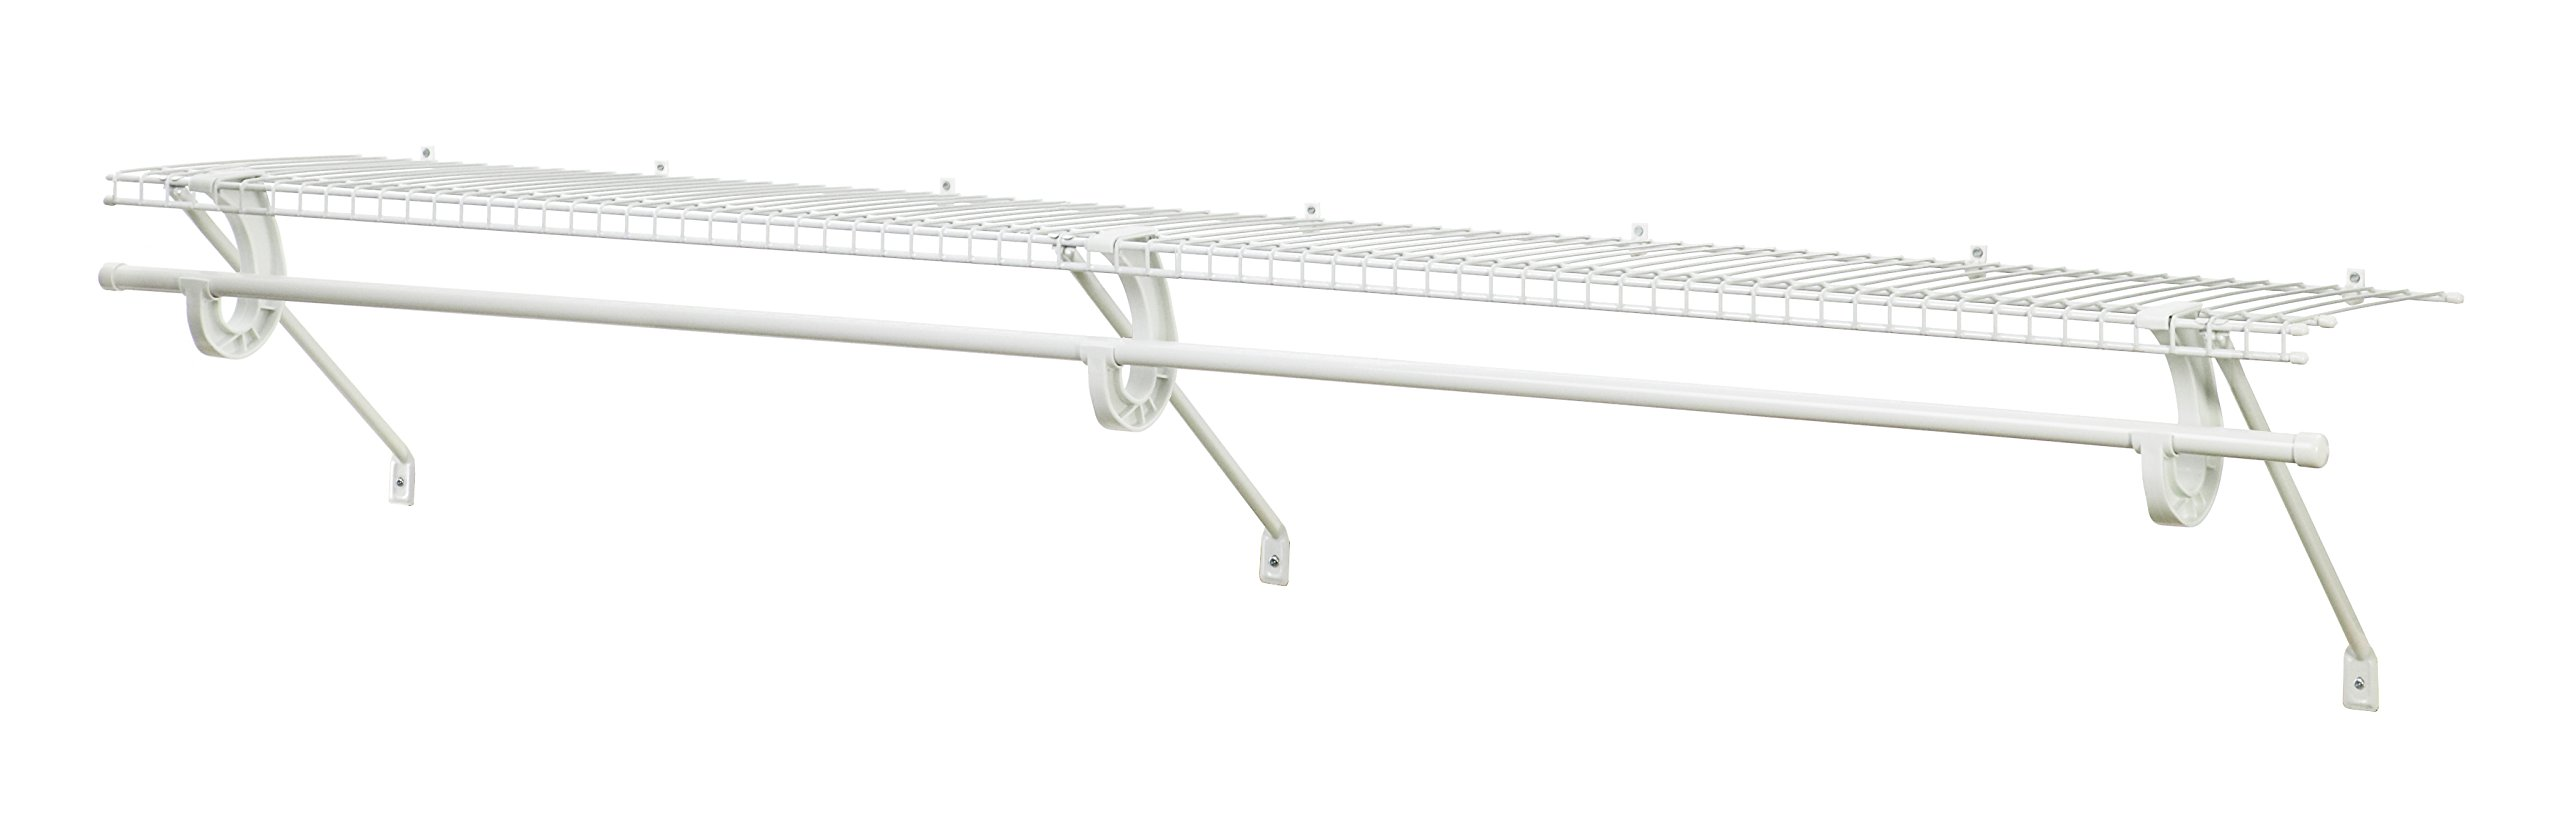 ClosetMaid 5632 Super Slide Ventilated Shelf Kit with Closet Rod, 6' x 12'', White